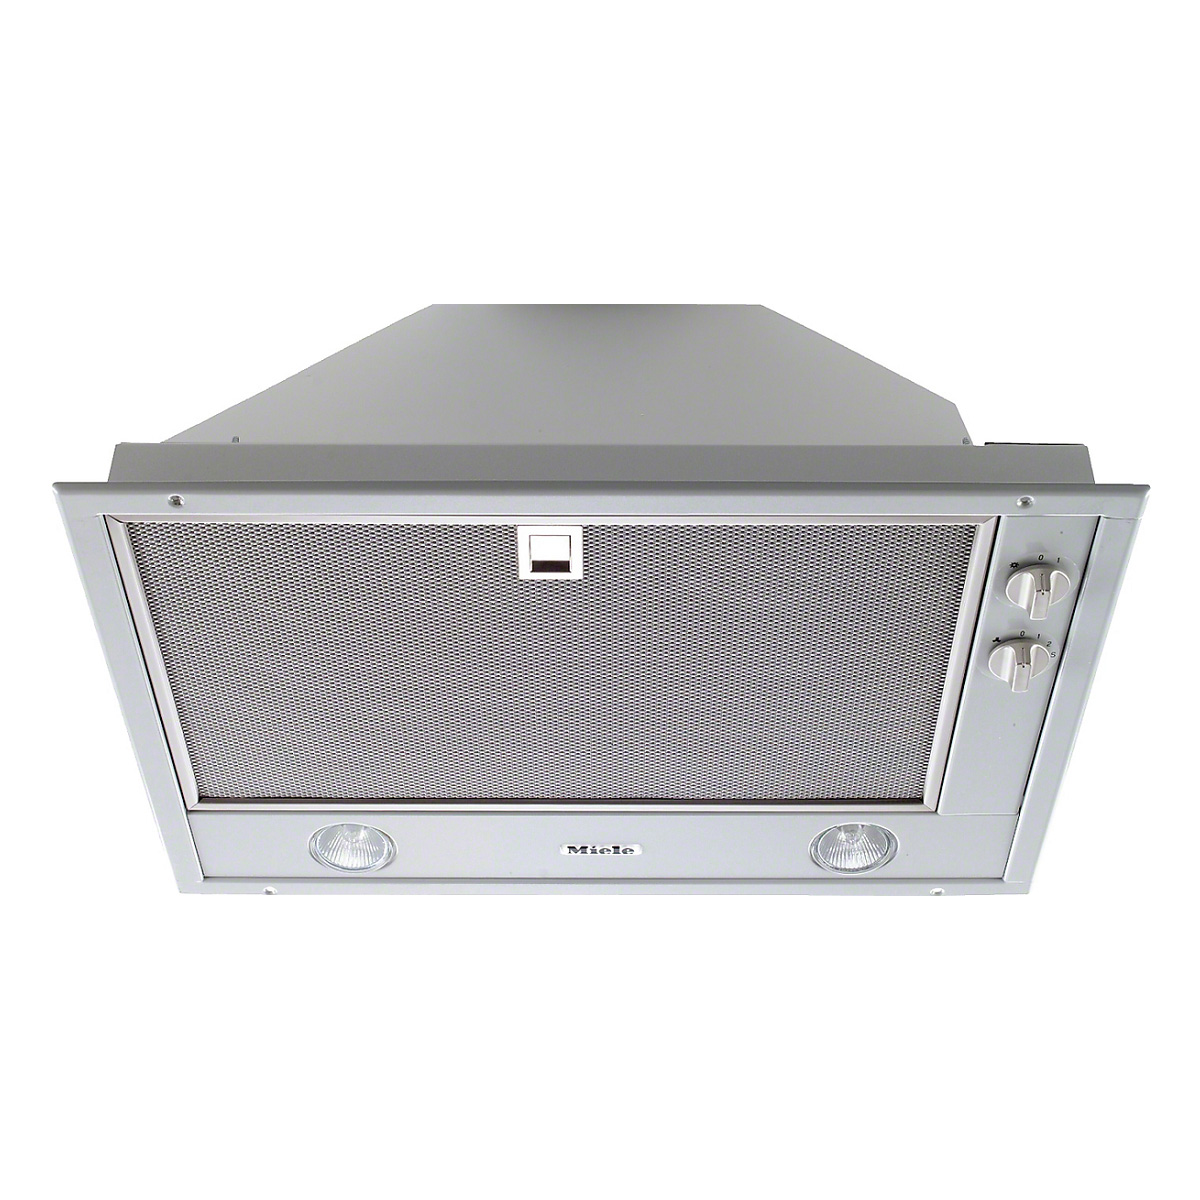 Miele DA2050 Built-in Rangehood